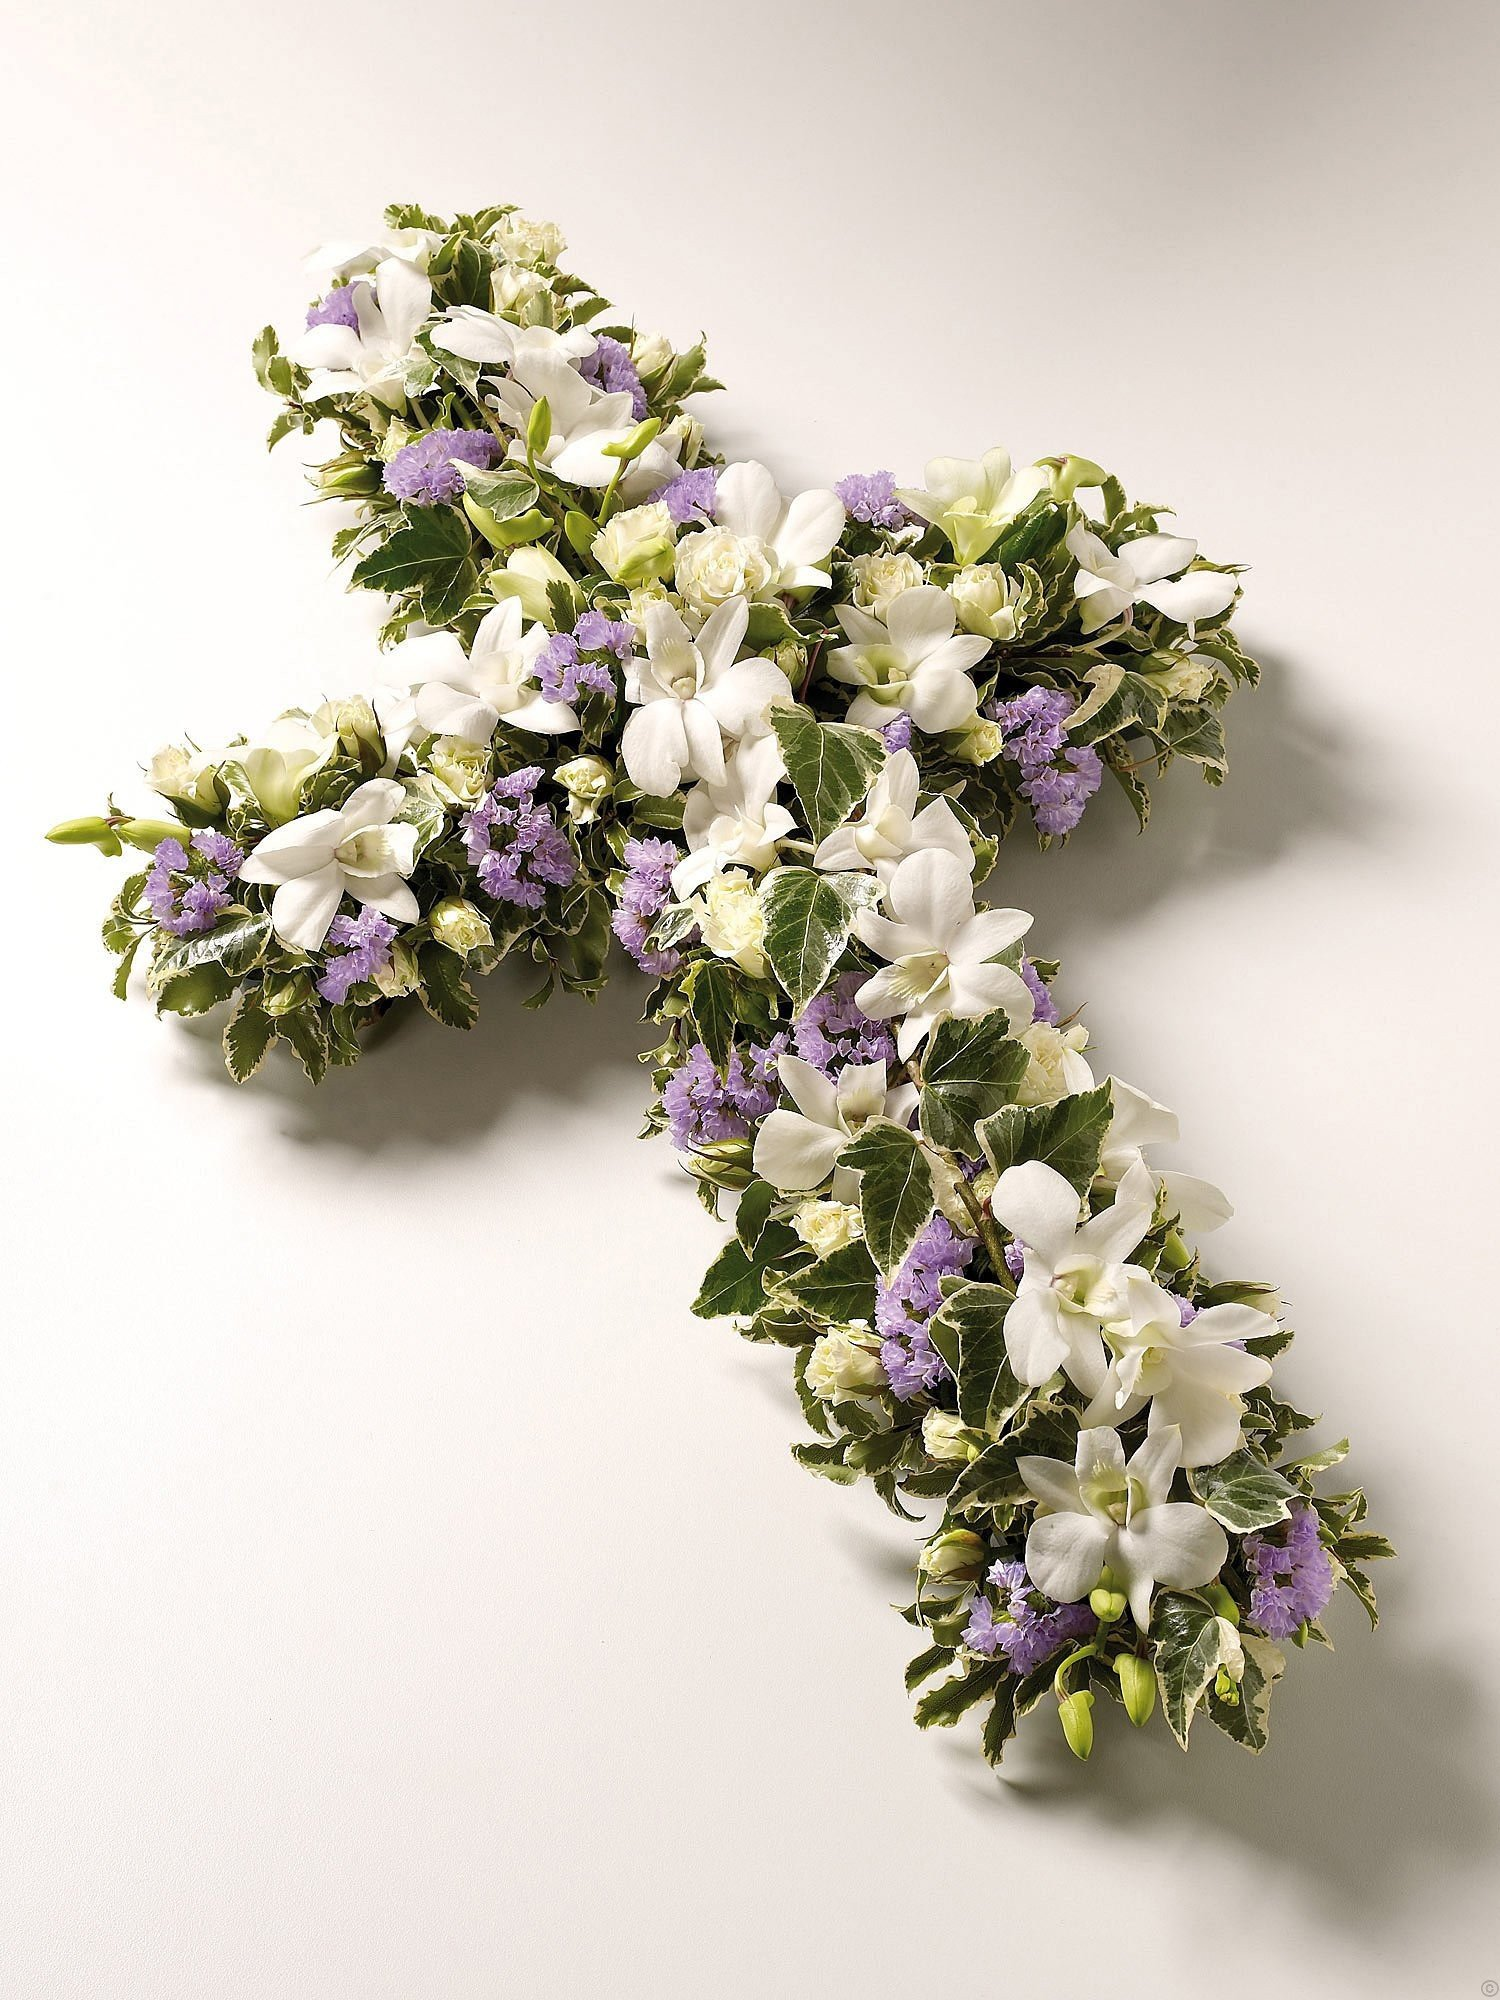 Floral tributes for funerals in taunton and somerset funeral flowers wreaths and tributes for somerset funerals izmirmasajfo